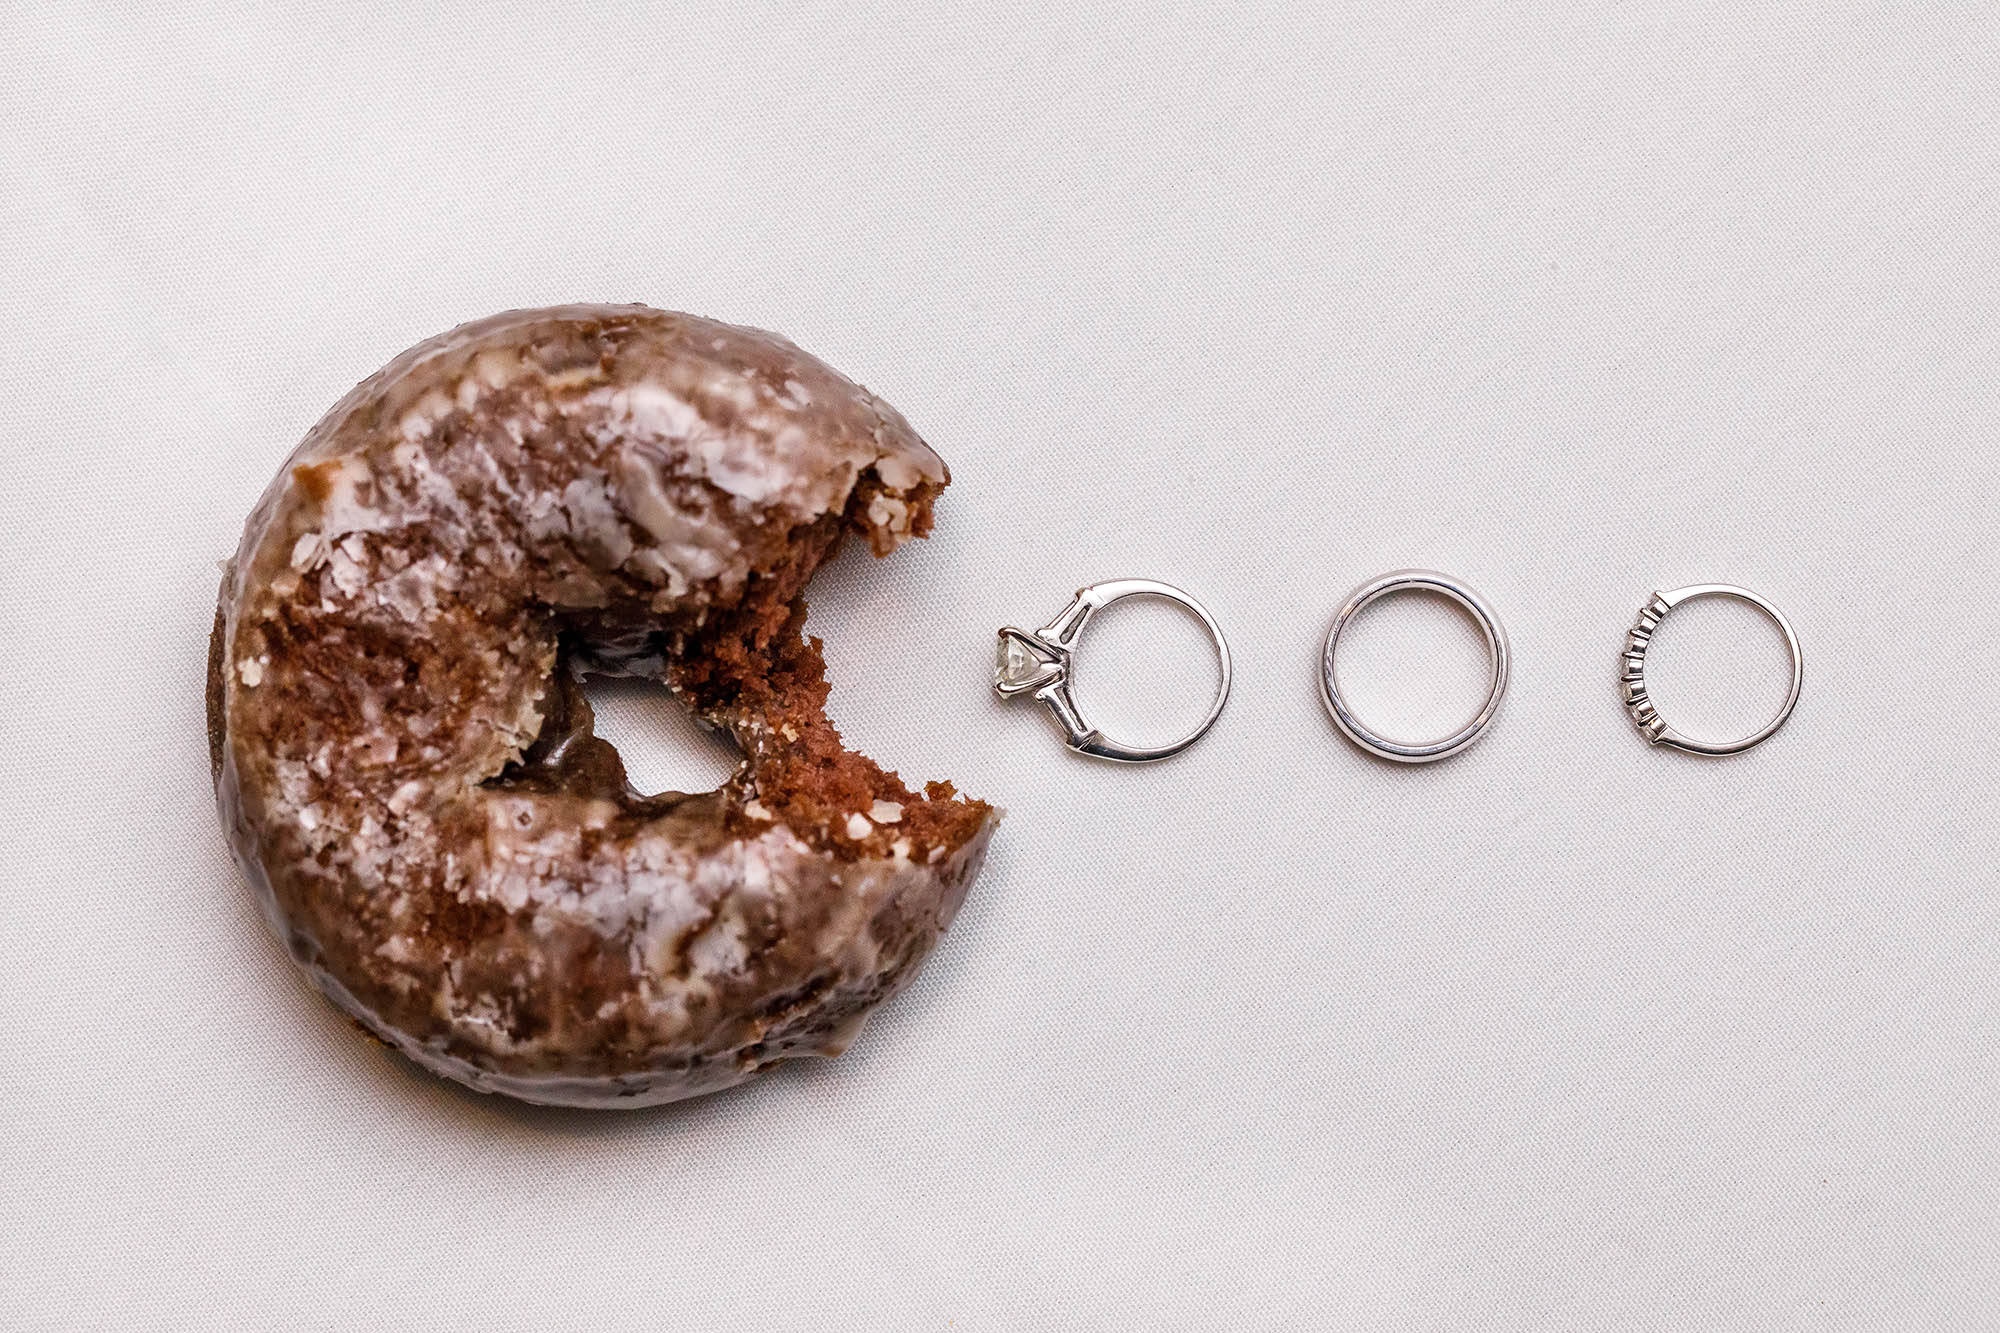 """A chocolate donut from Bakers """"eats"""" an engagement ring and wedding band set pac-man style."""